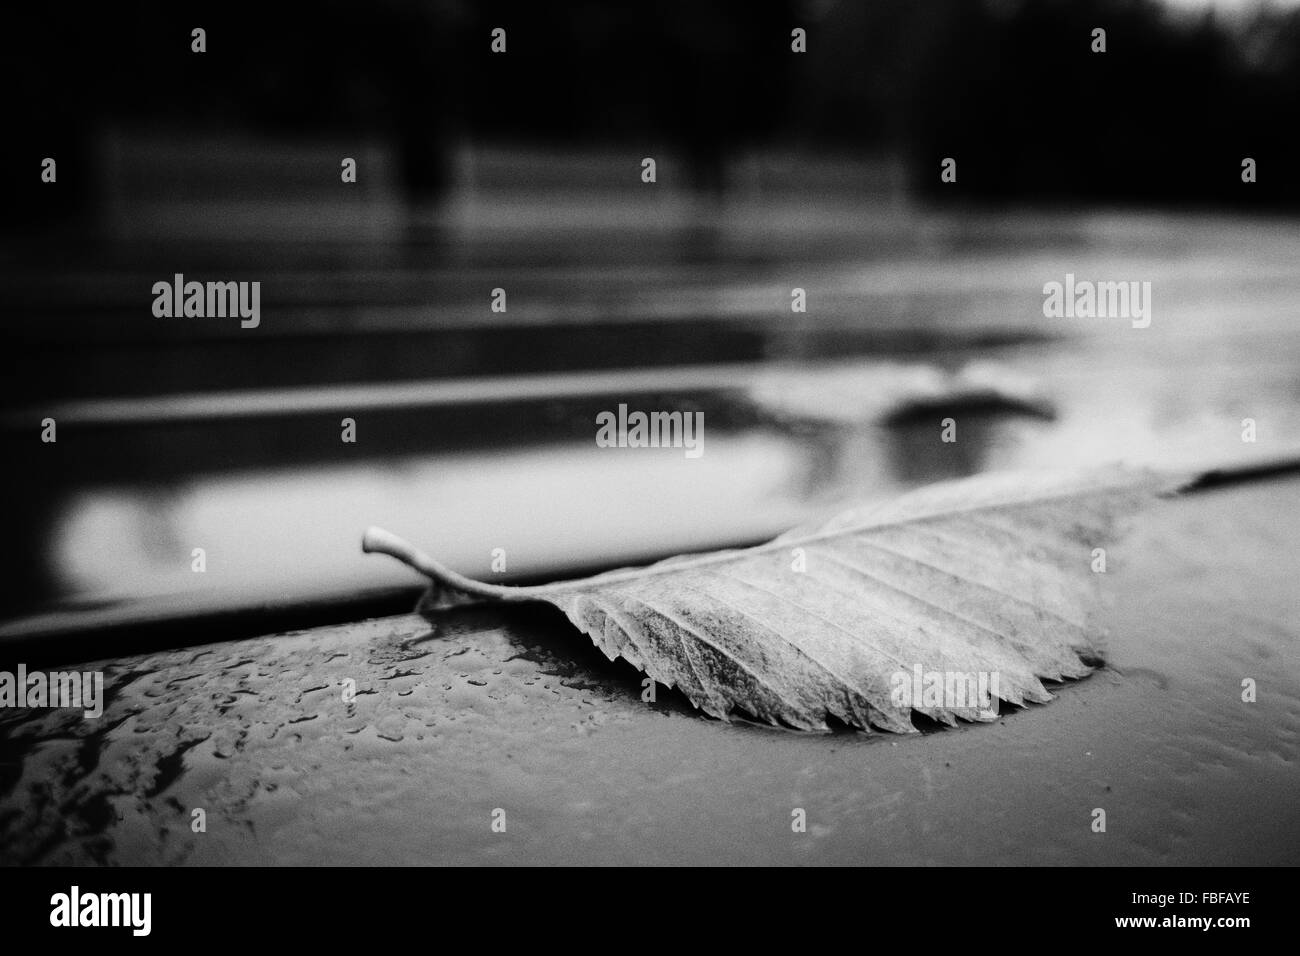 Close-Up Of Leaf On Wet Road - Stock Image